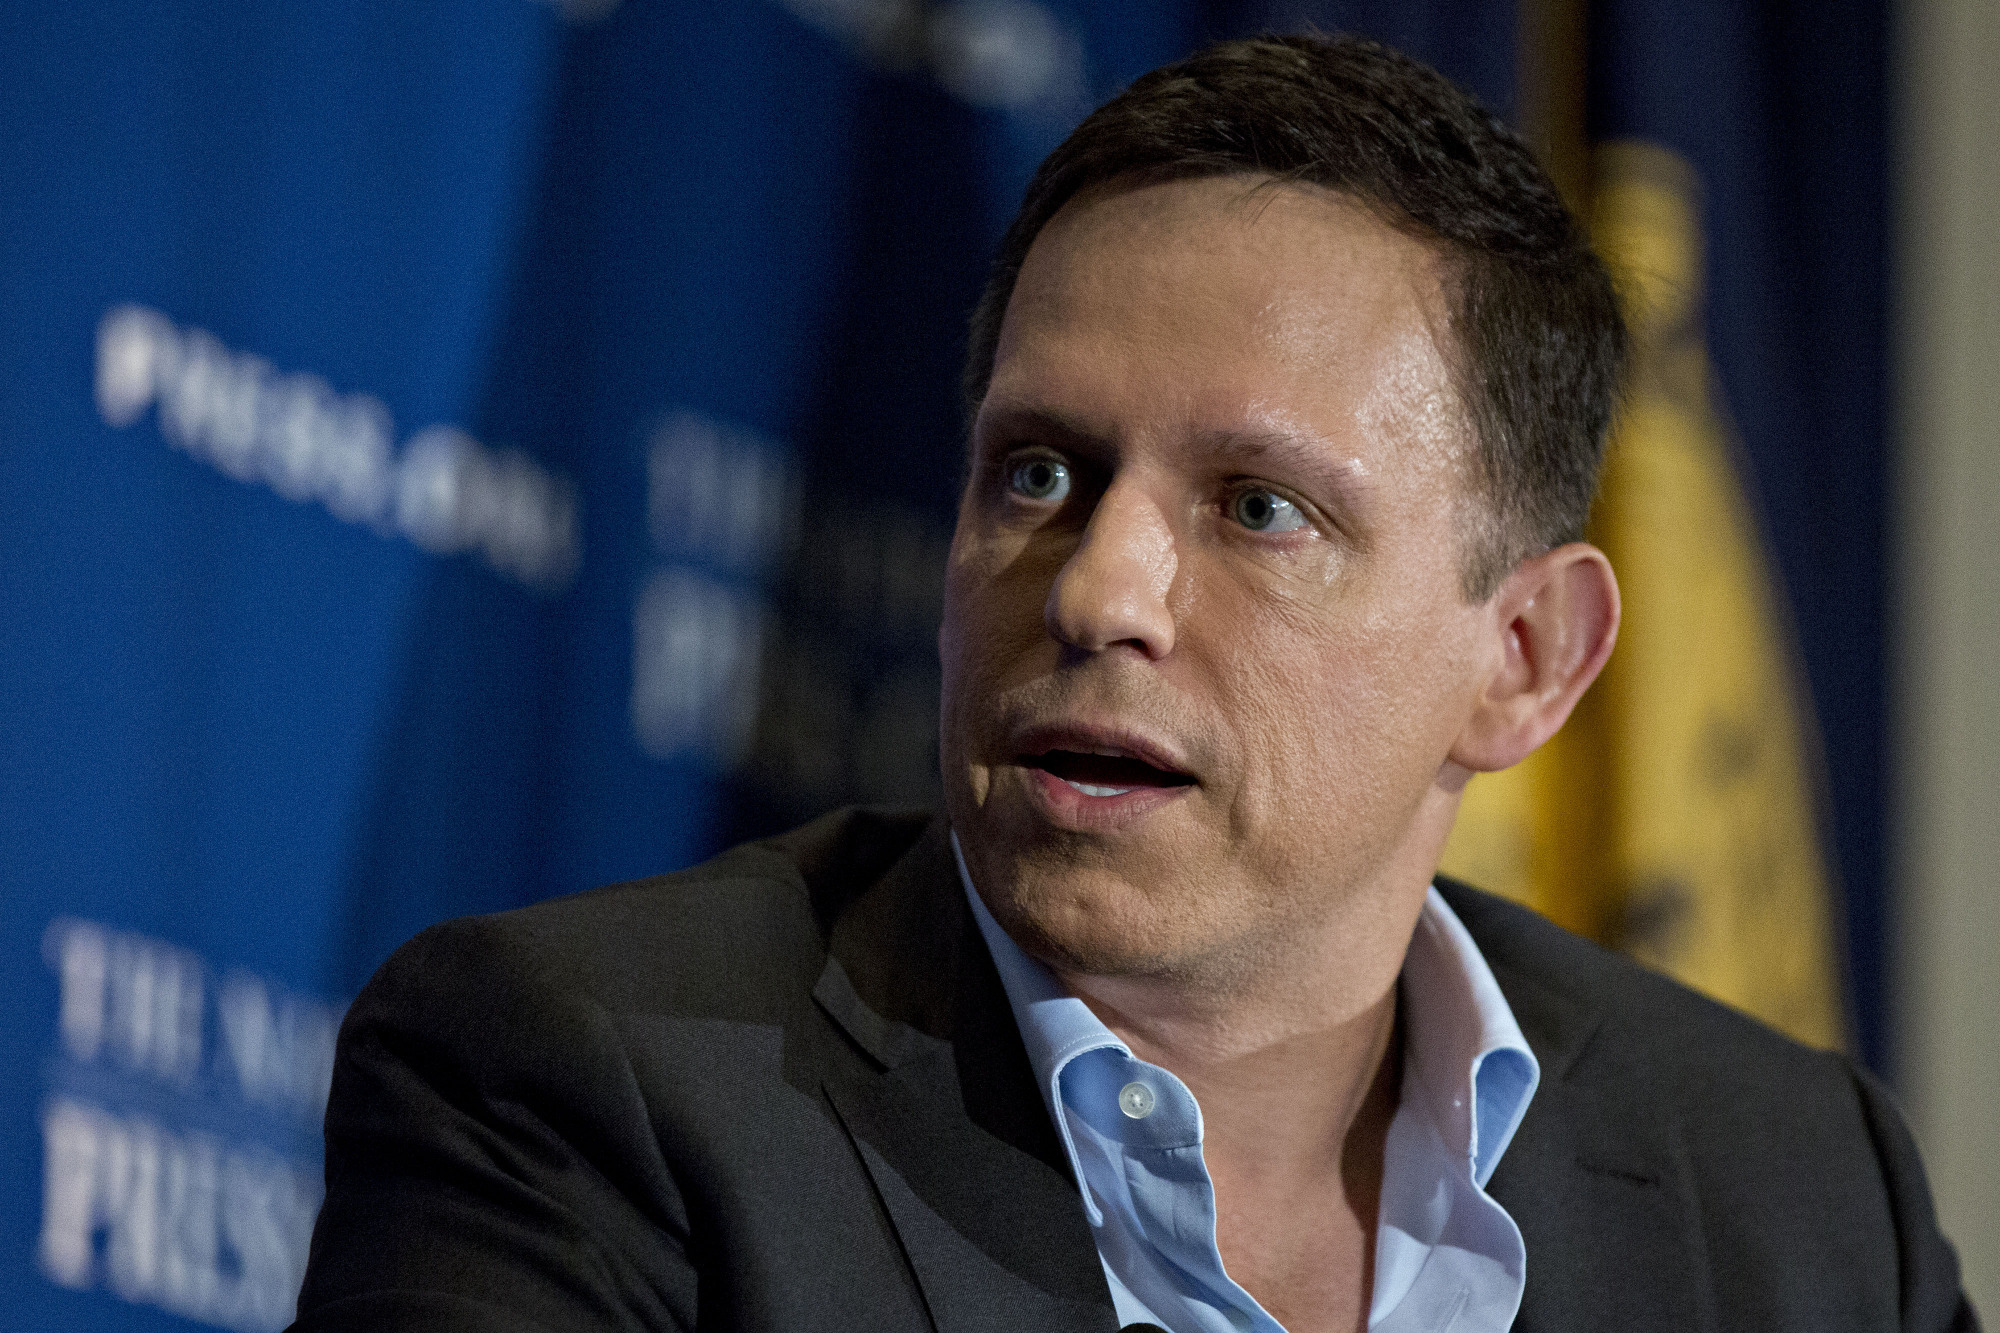 bloomberg.com - Eyk Henning - Peter Thiel and Billionaire Jihan Wu's Bitmain Invest in Block.one